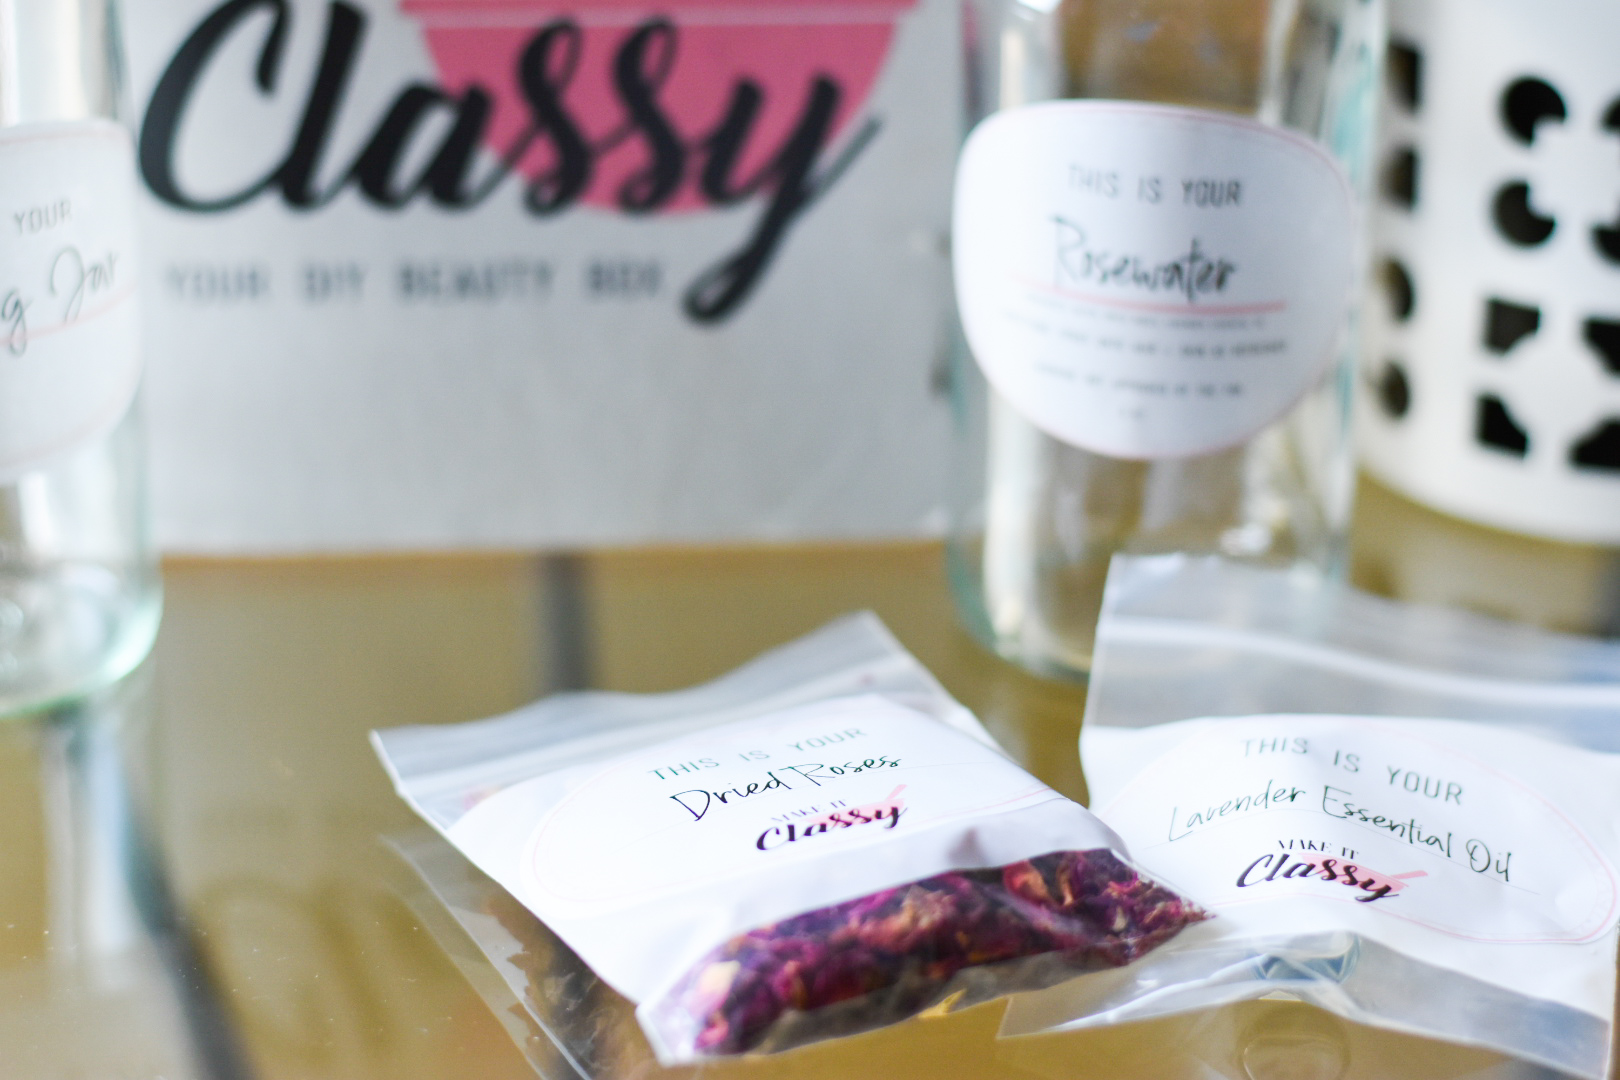 Make It Classy Dried Rose Petals and Lavender Essential Oils